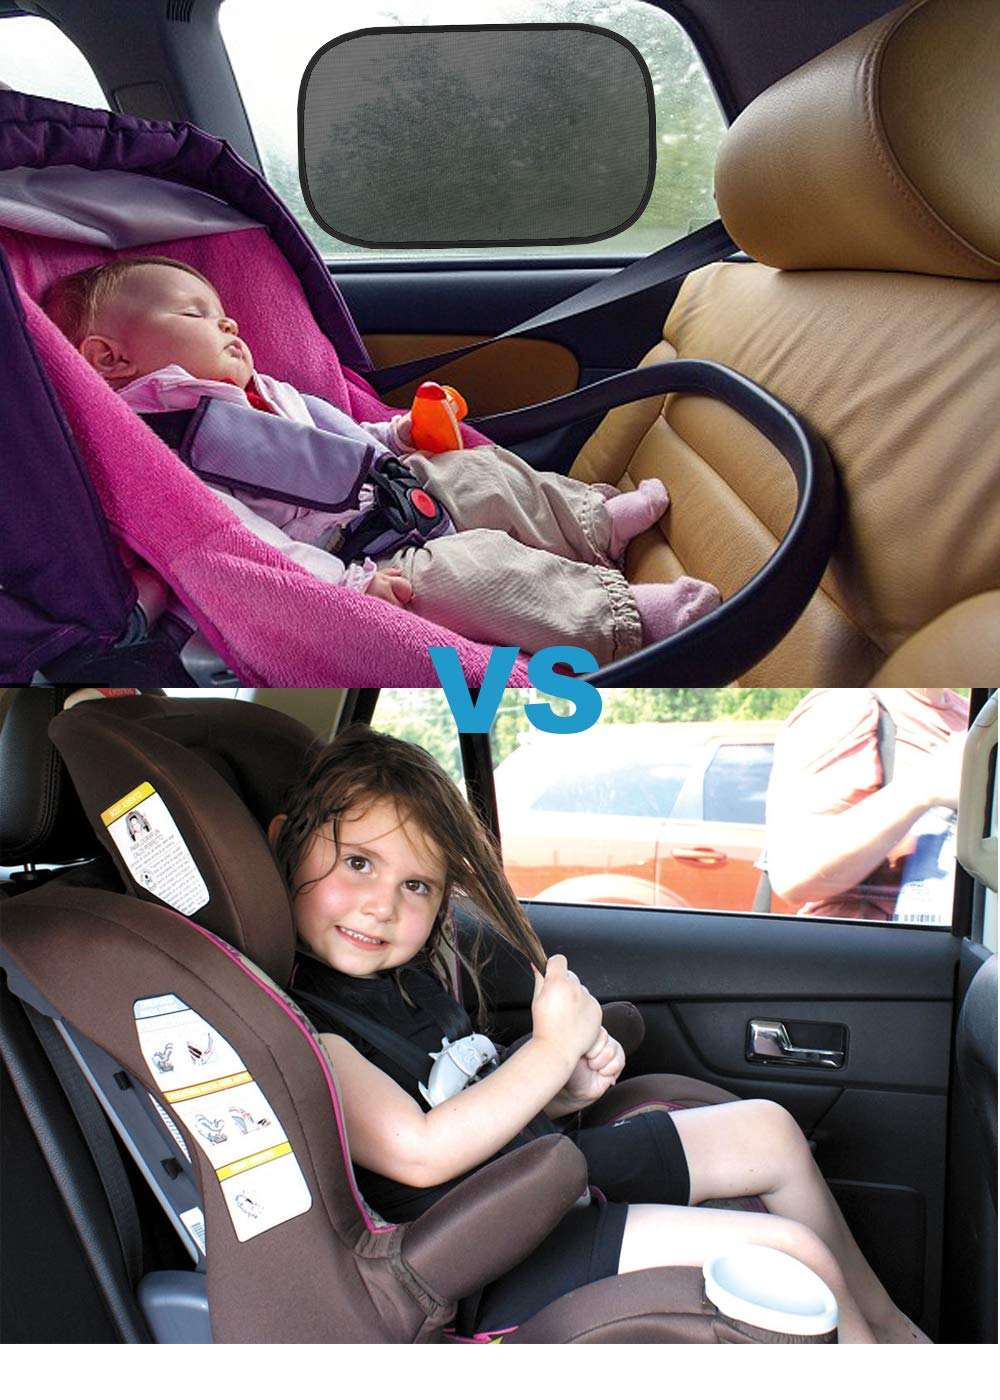 Pack of 4 Glare and UV Rays Car Sun Shade for Baby Auto Side Sunshade Protector Cling Sunshade for Car Window to Protect Baby Kid Pet from Sun Kitbest Car Window Shade